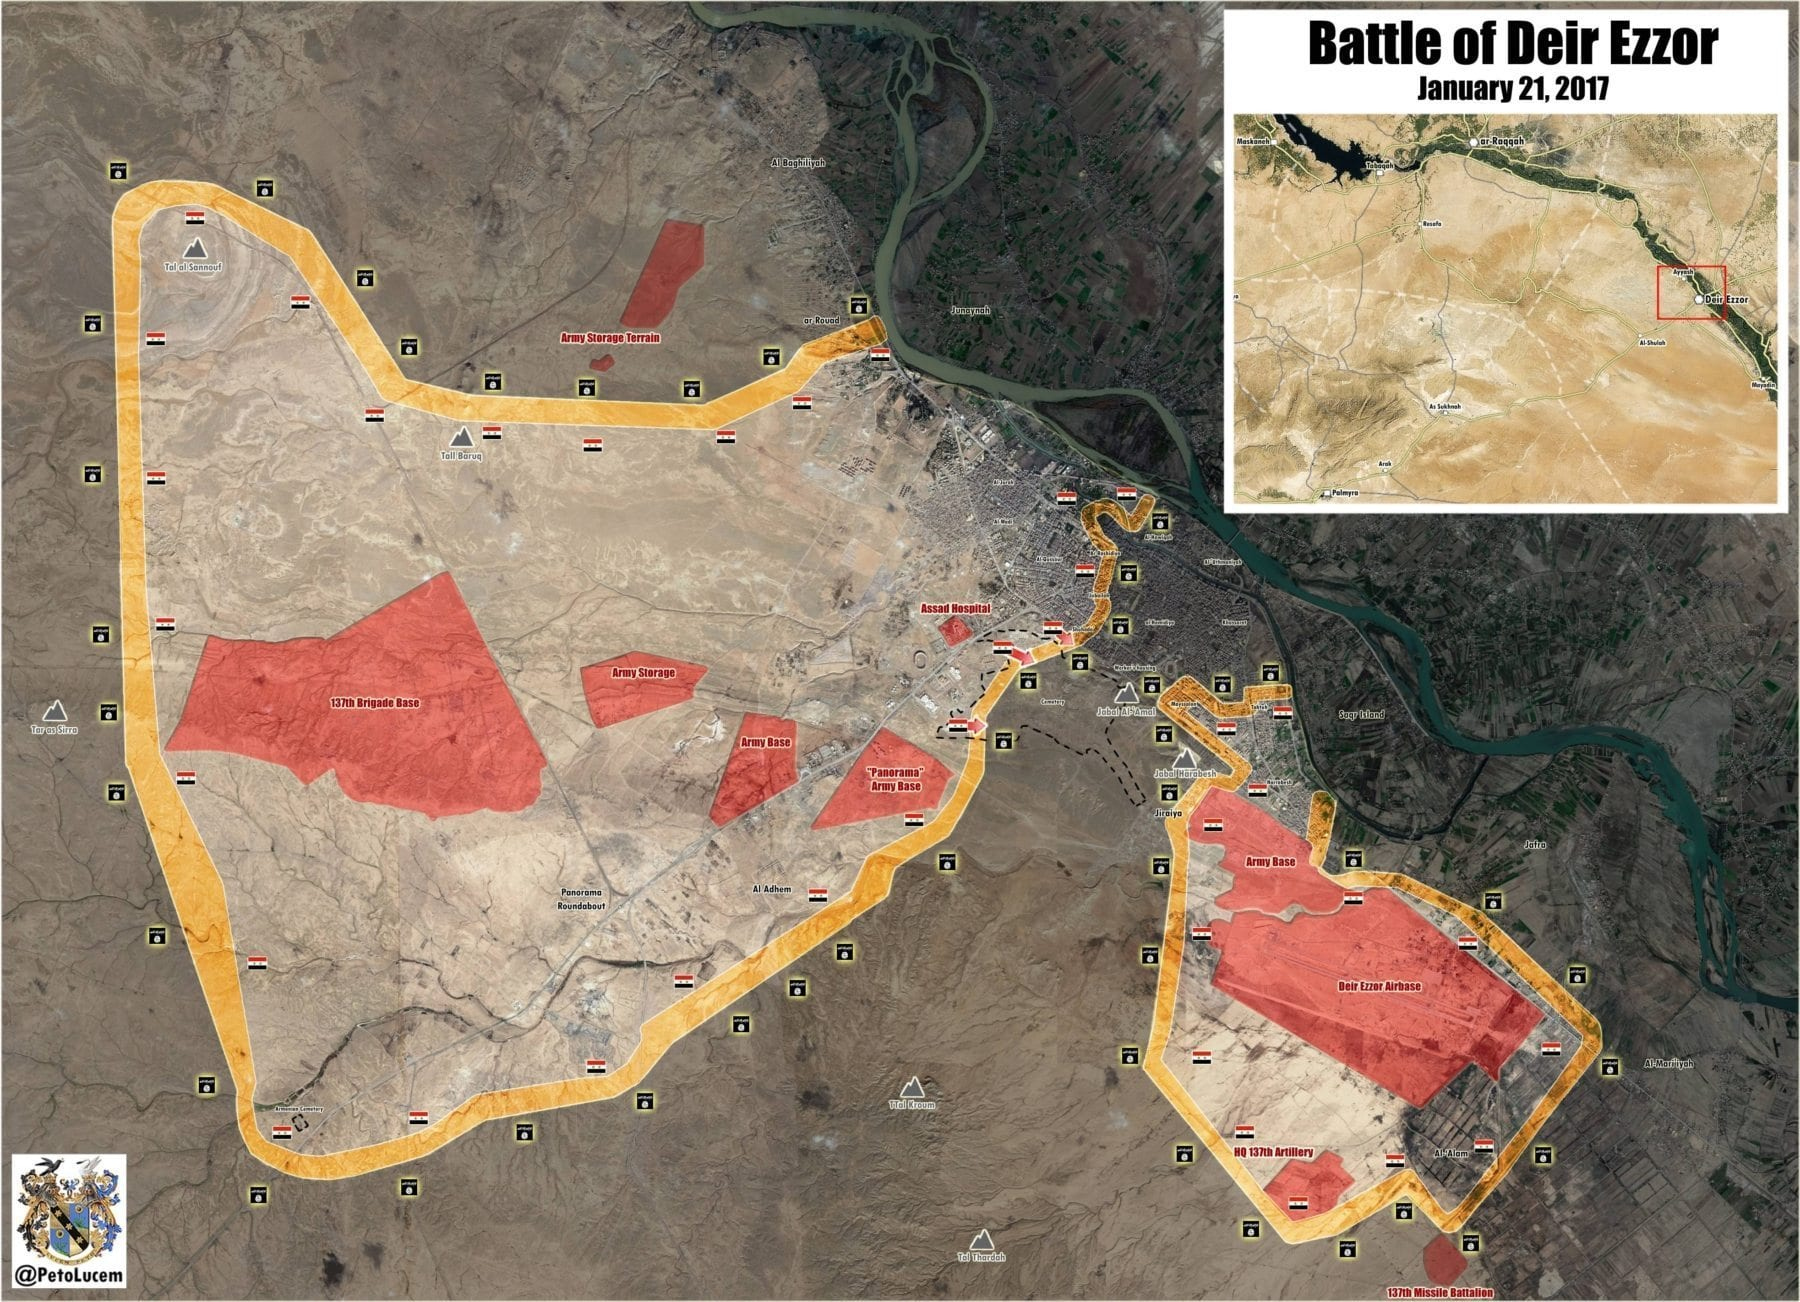 Image Deir Ezzor map JAN21